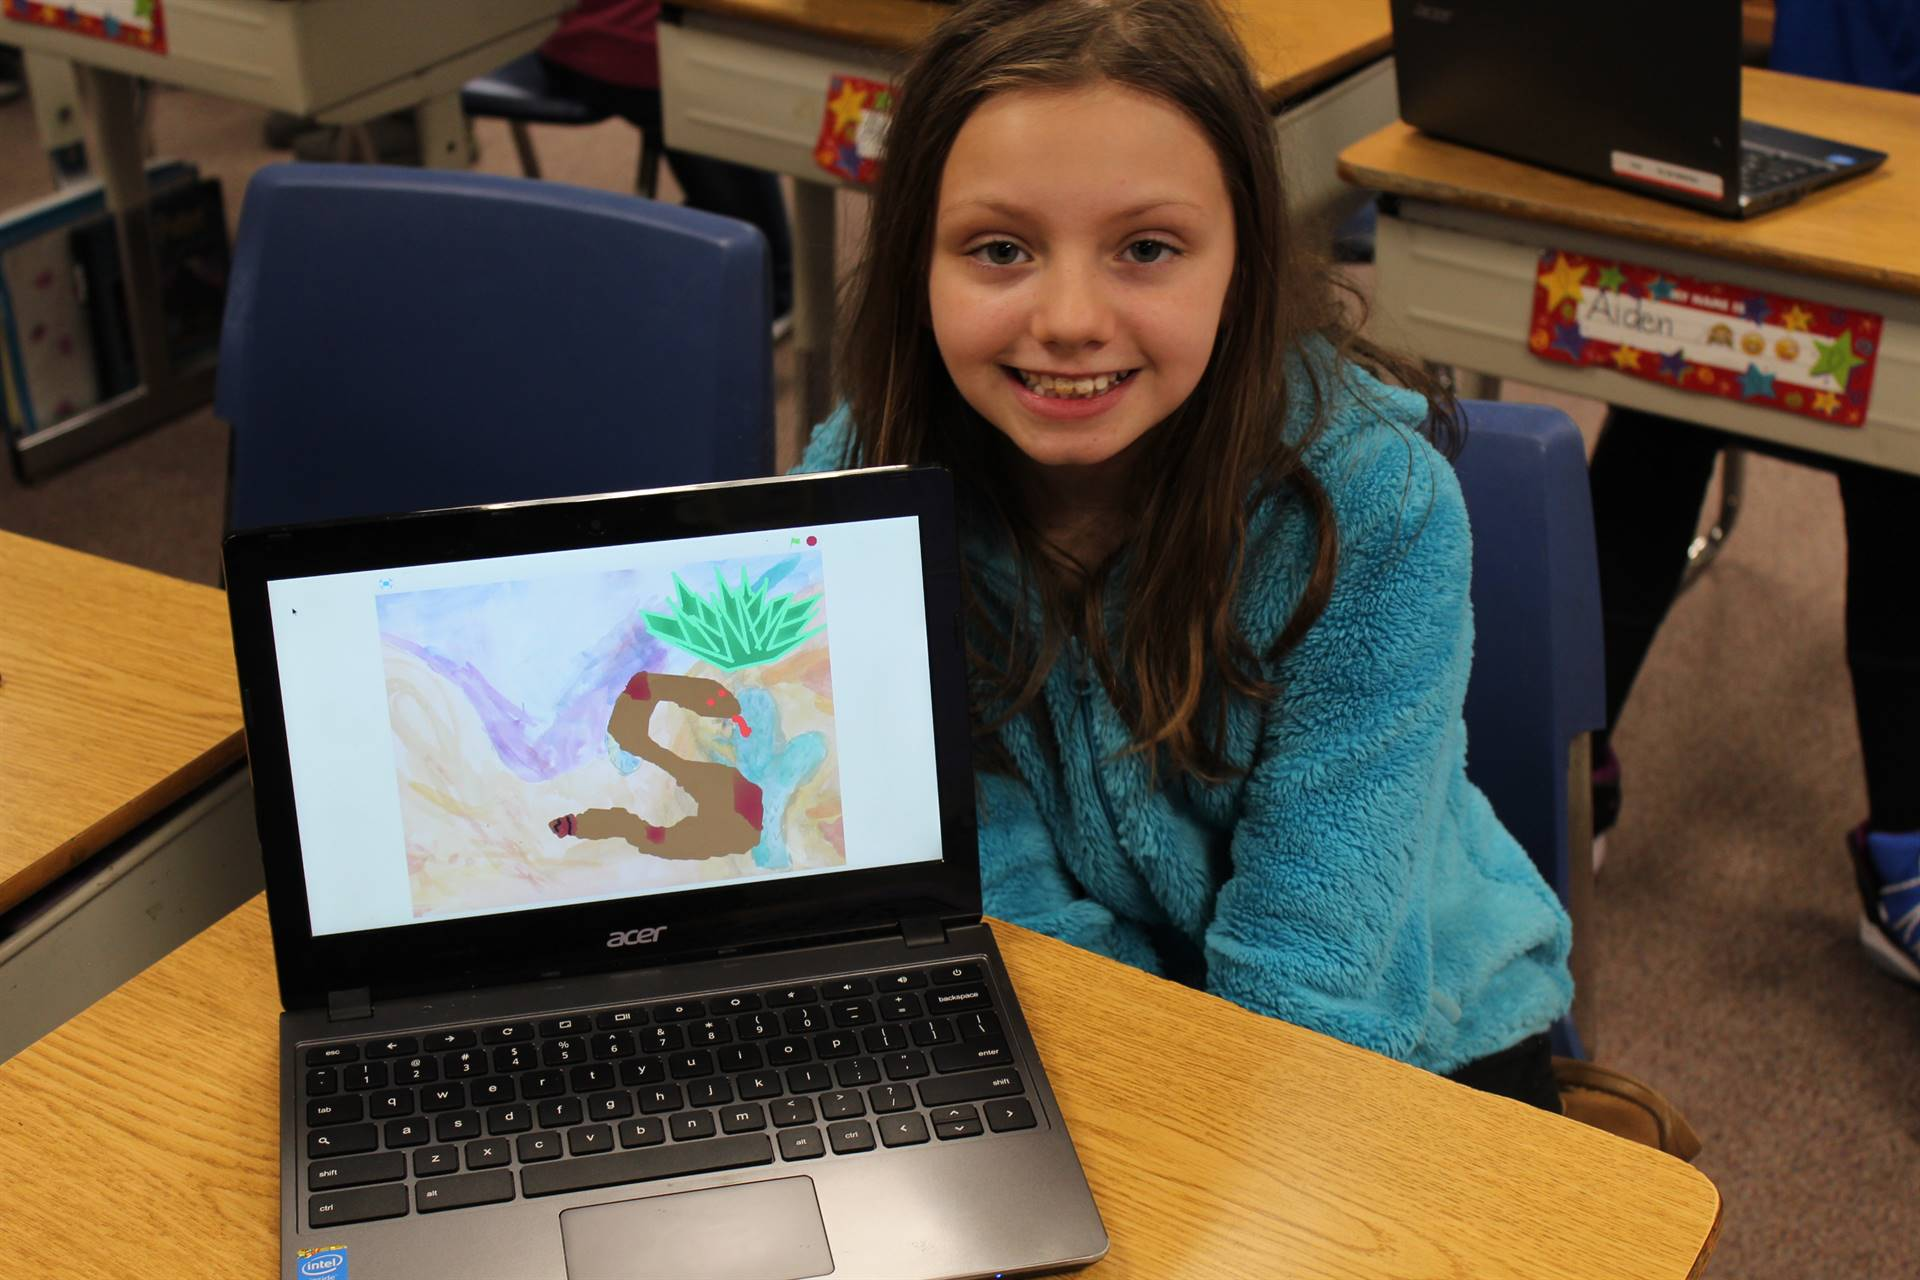 Fourth grader with her Scratch presentation on a computer